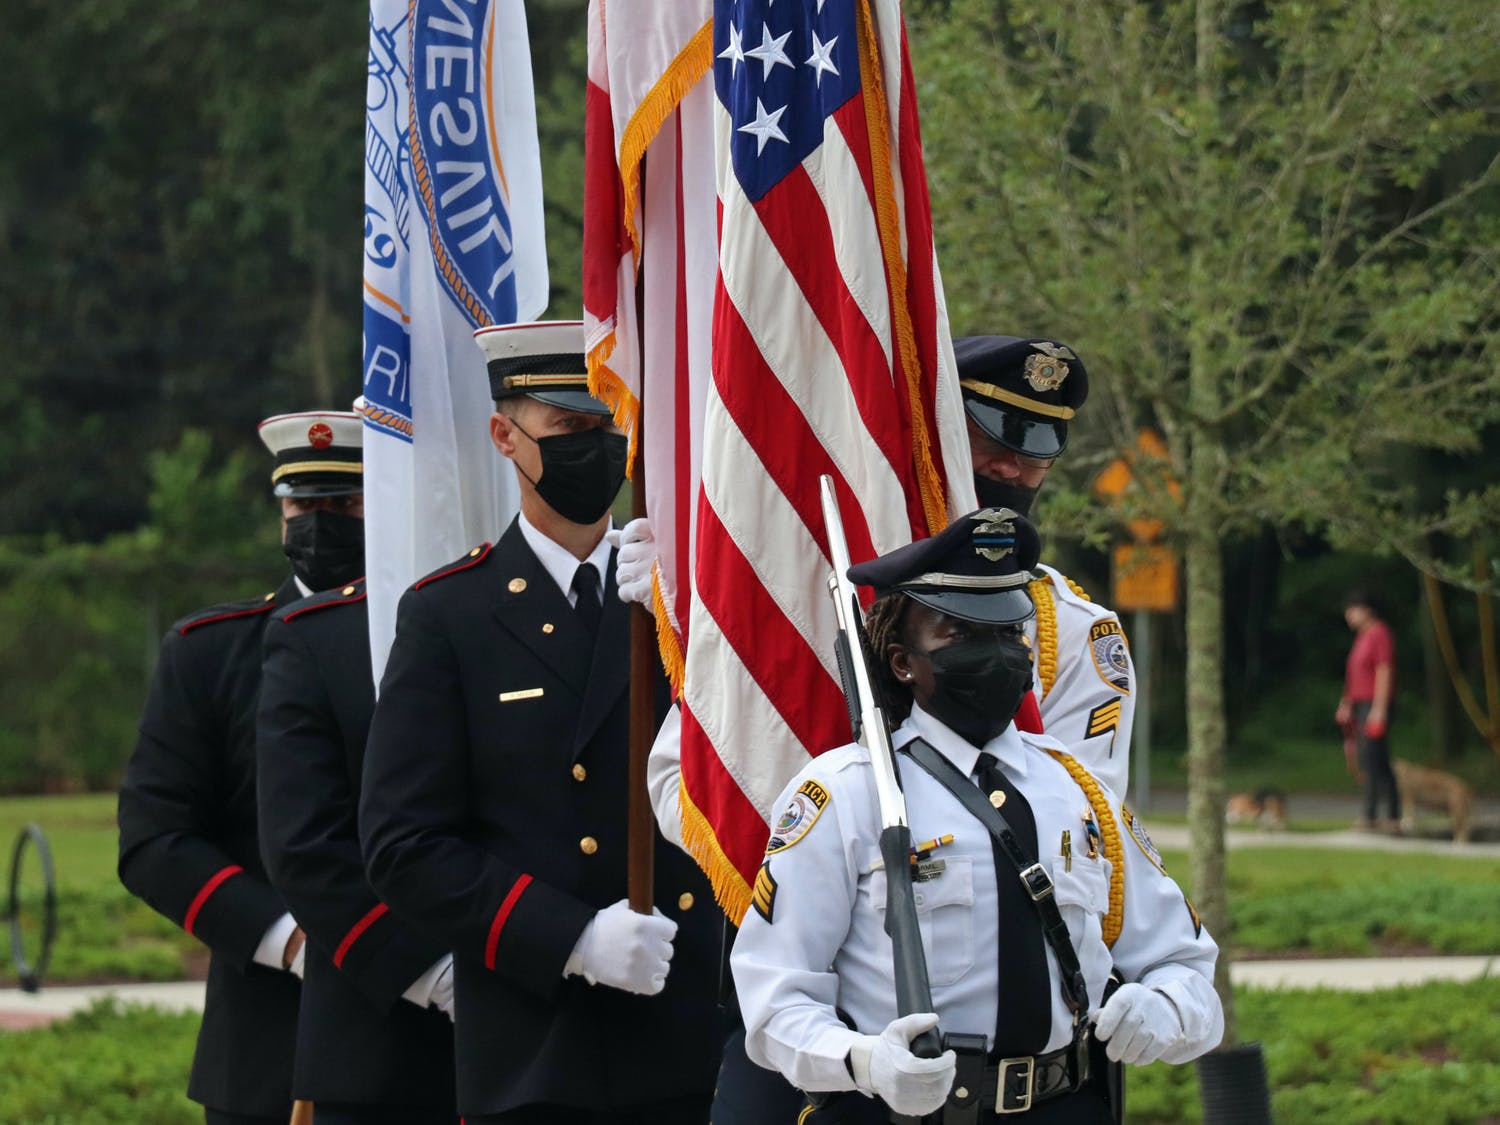 The Gainesville Fire Rescue and Gainesville Police Department joint honor guard does a presentation of colors at Reserve Park on Saturday, Sept. 11, 2021. The three flags represent the city, state and country (from left to right).